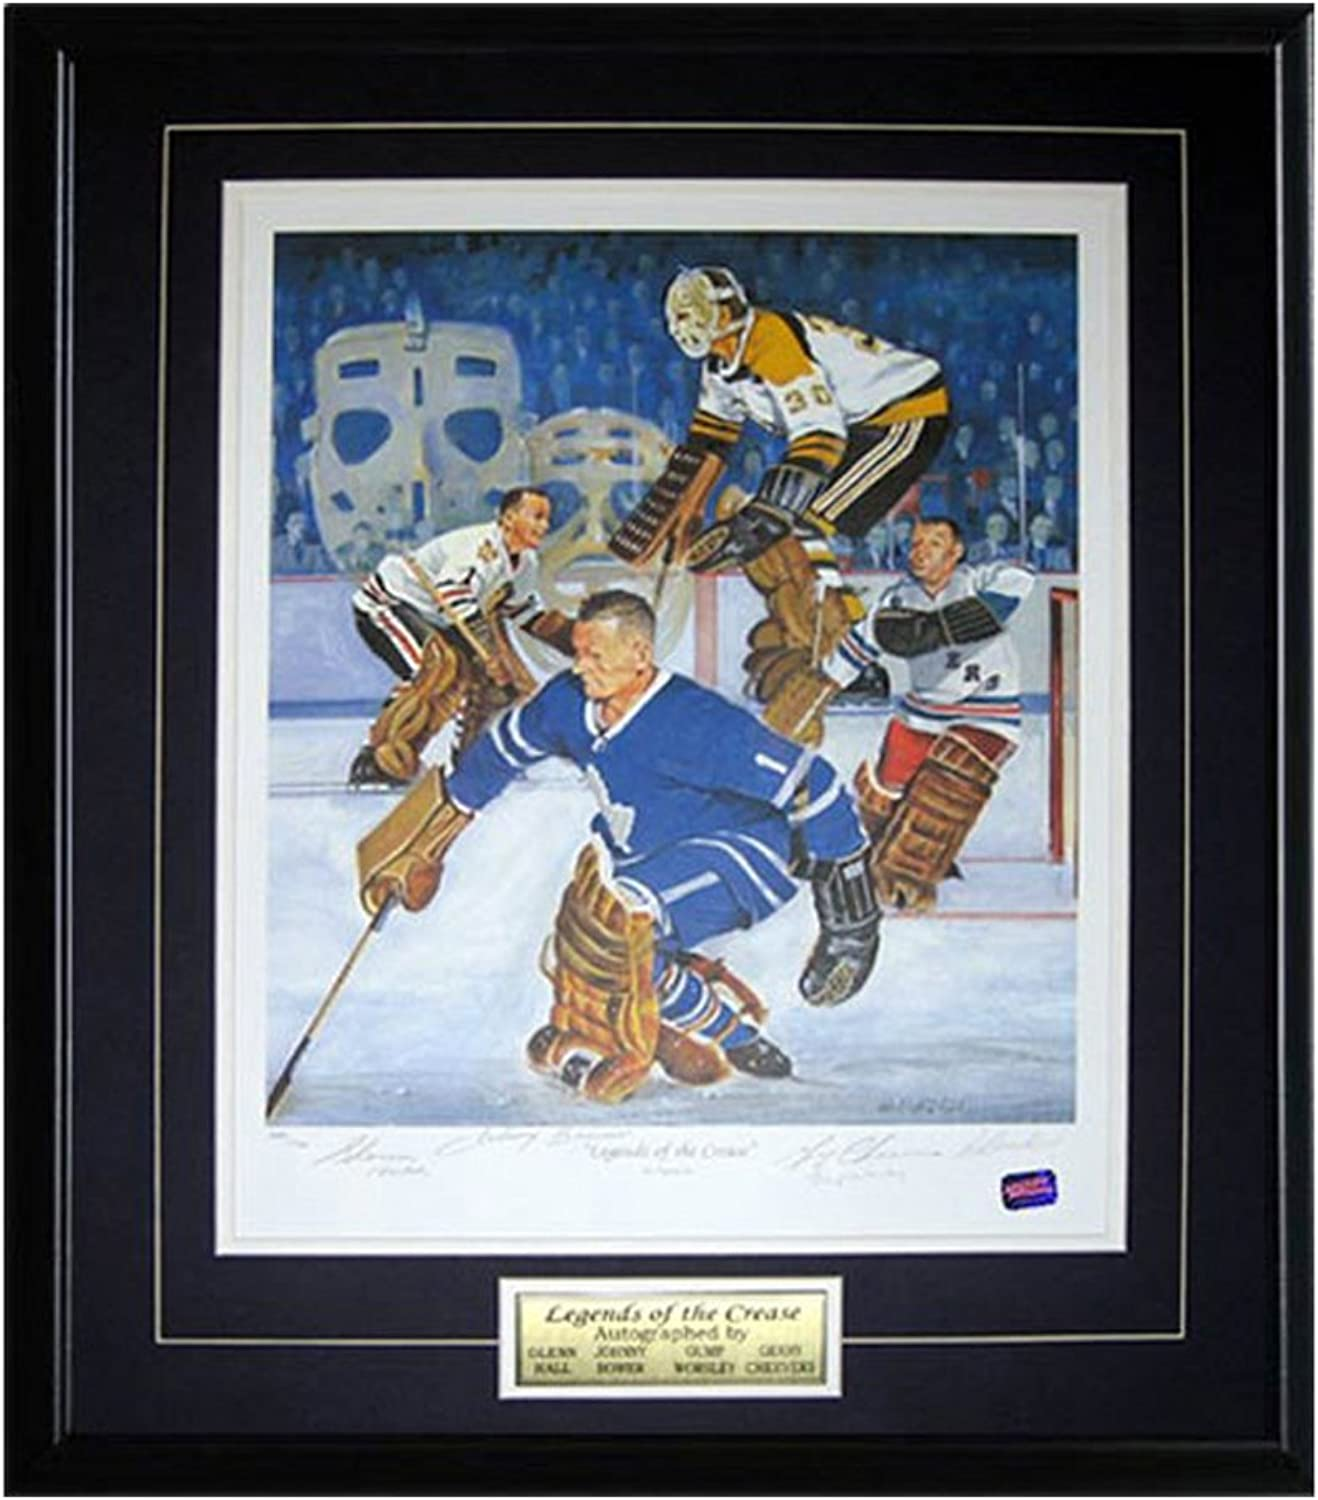 Autograph Authentic Sports Fan NHL Autographed Legends Of The Crease Lithograph  Limited Edition of 1966